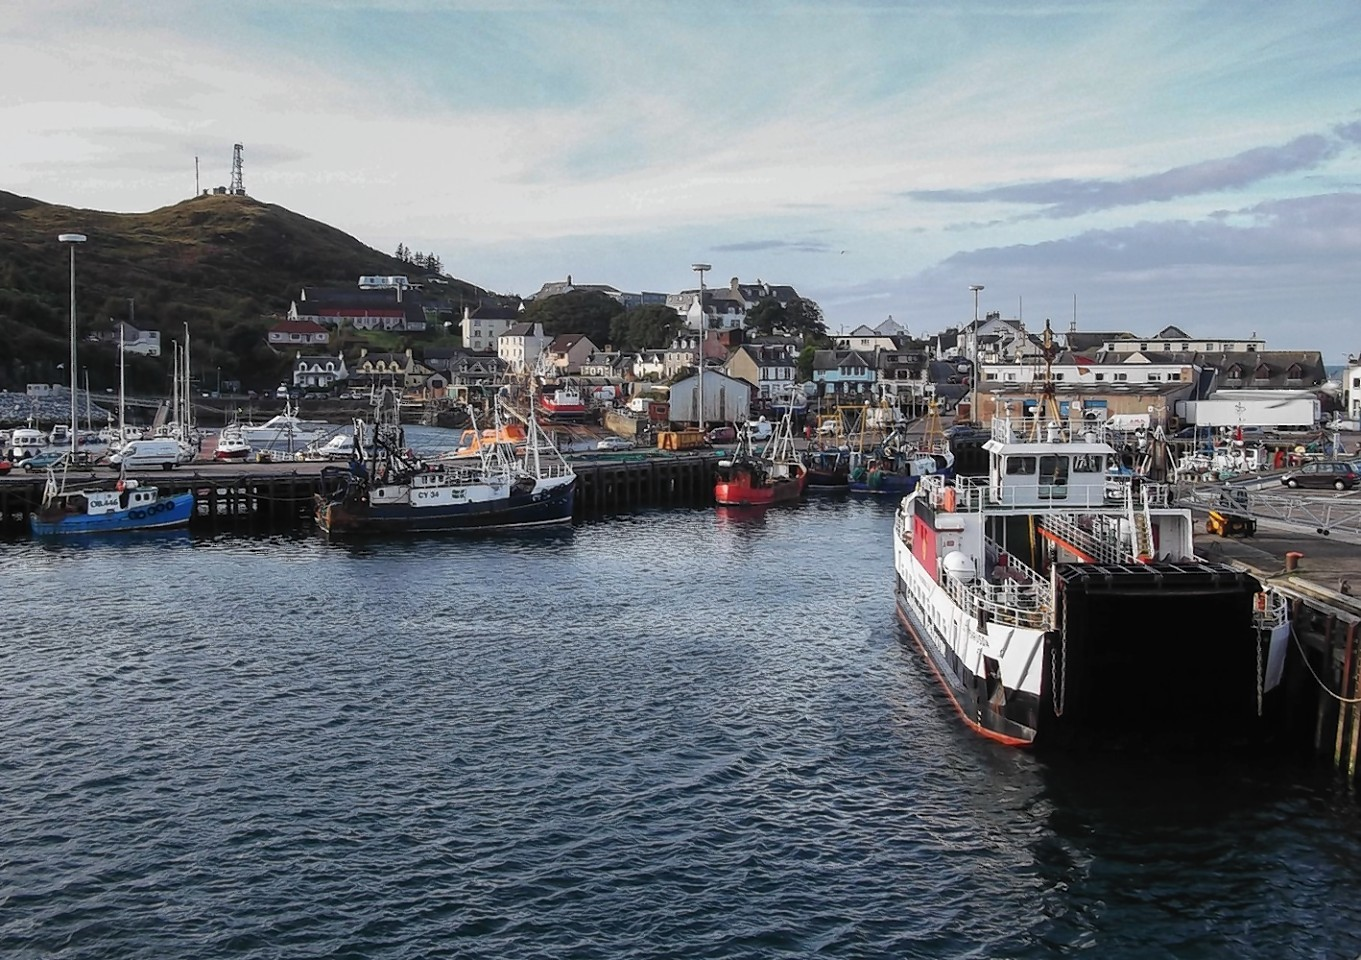 The body was transferred to Mallaig Harbour